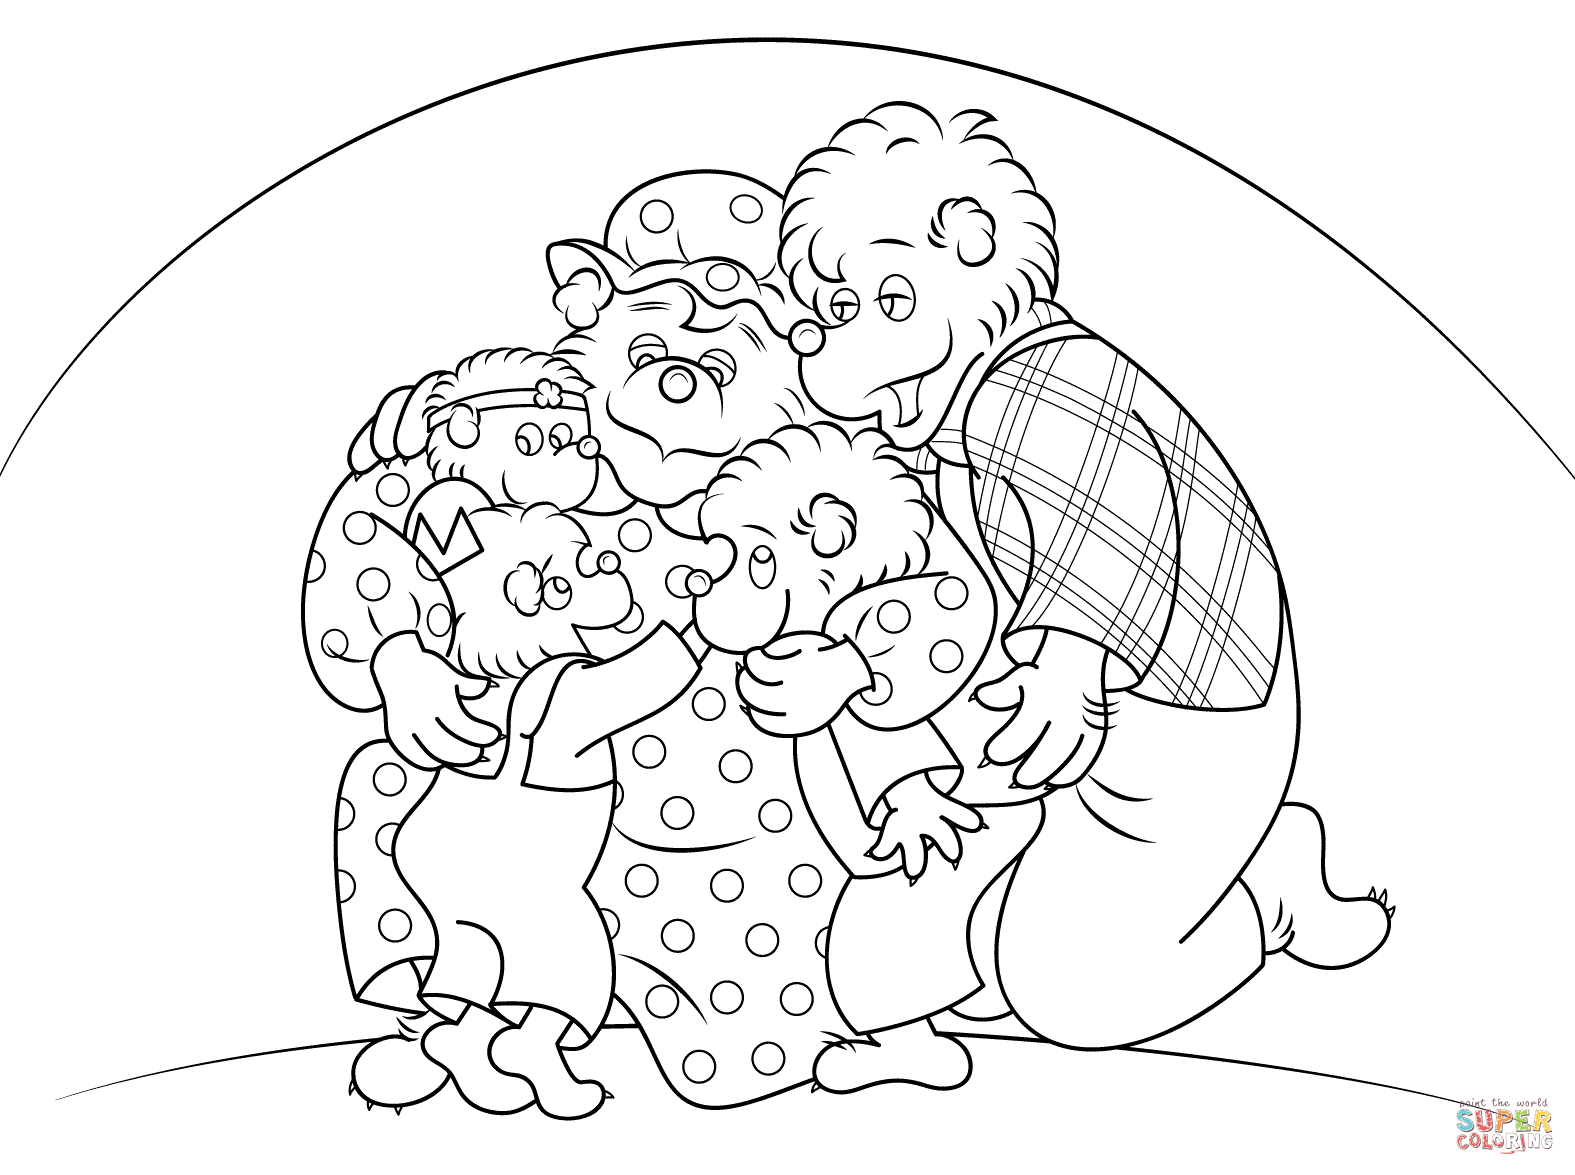 berenstain bears coloring pages berenstain bears halloween coloring pages coloring home coloring berenstain pages bears